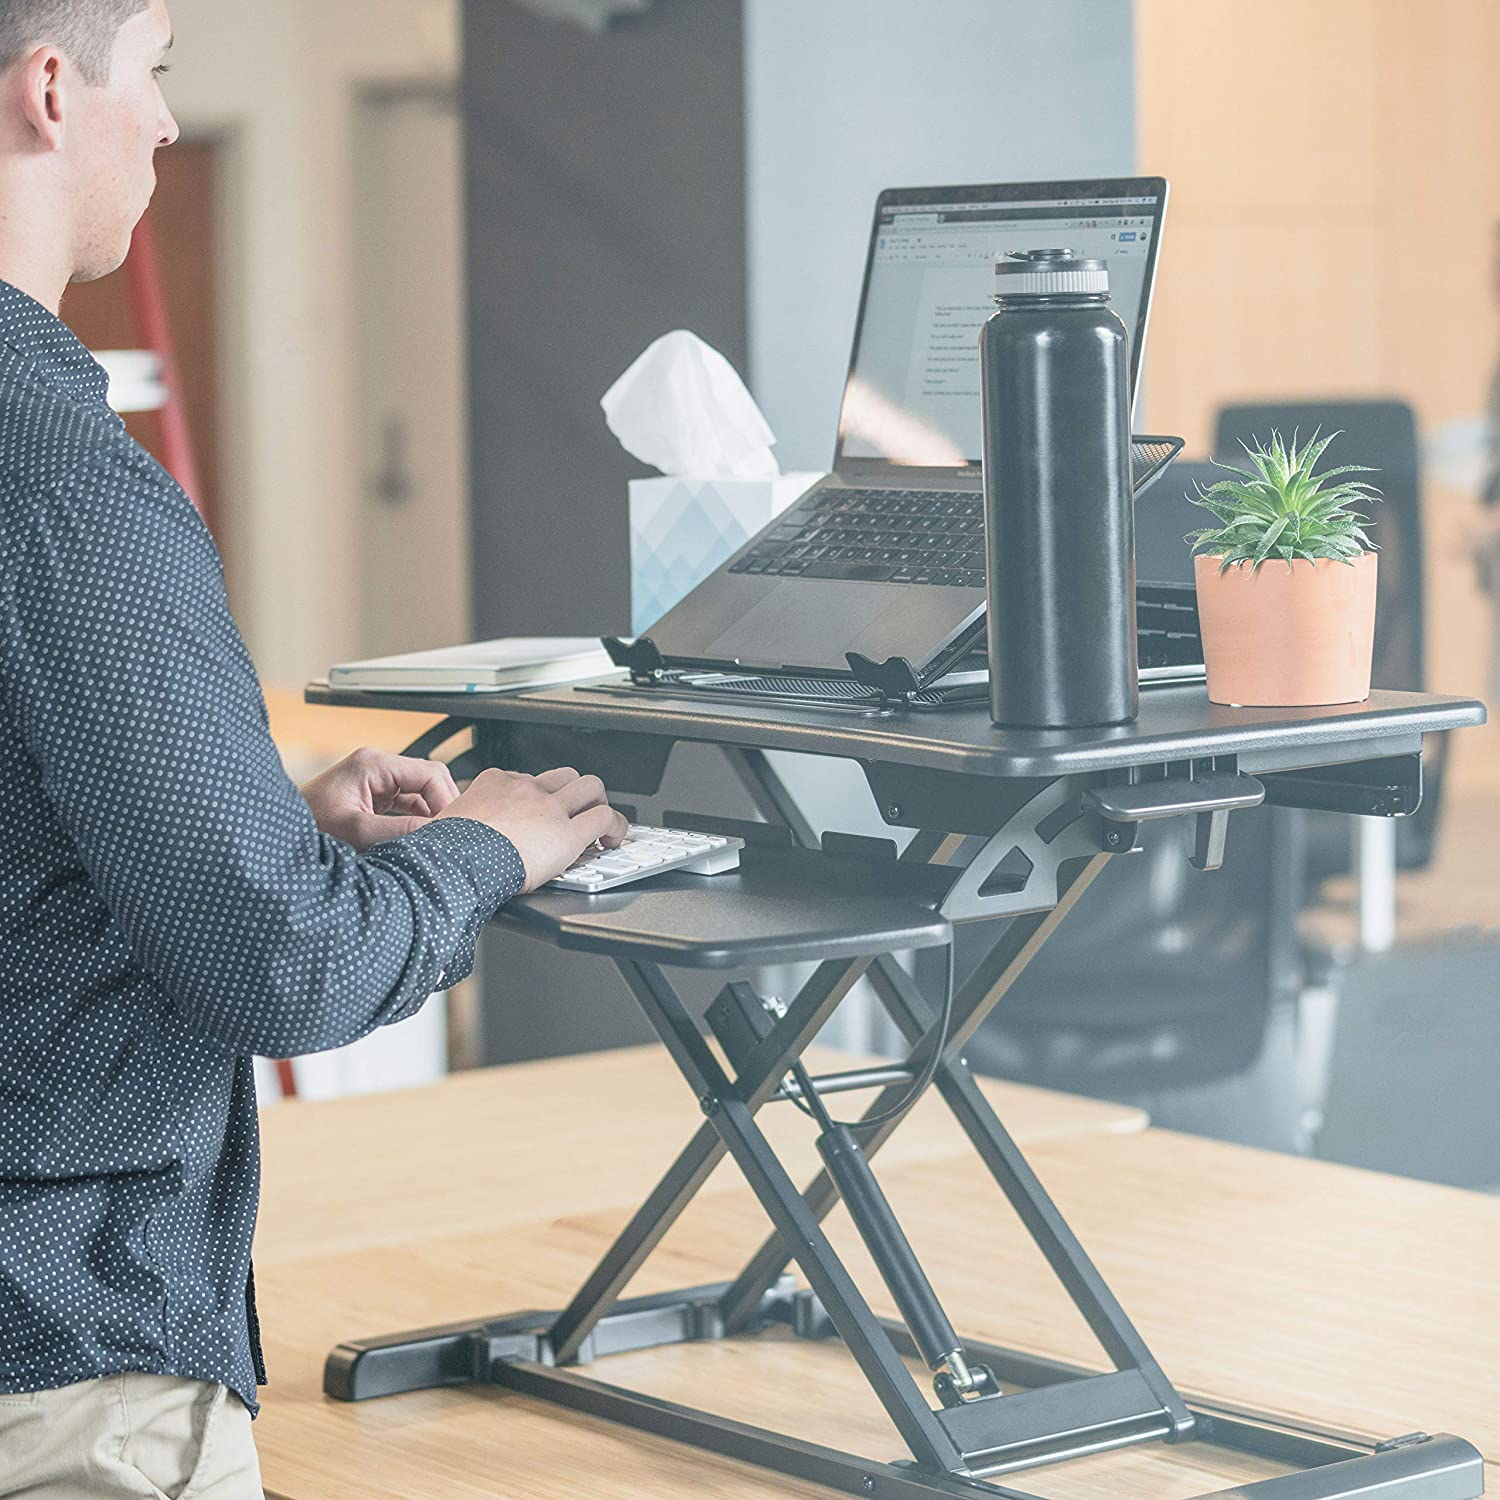 standing desk reviews consumer reports